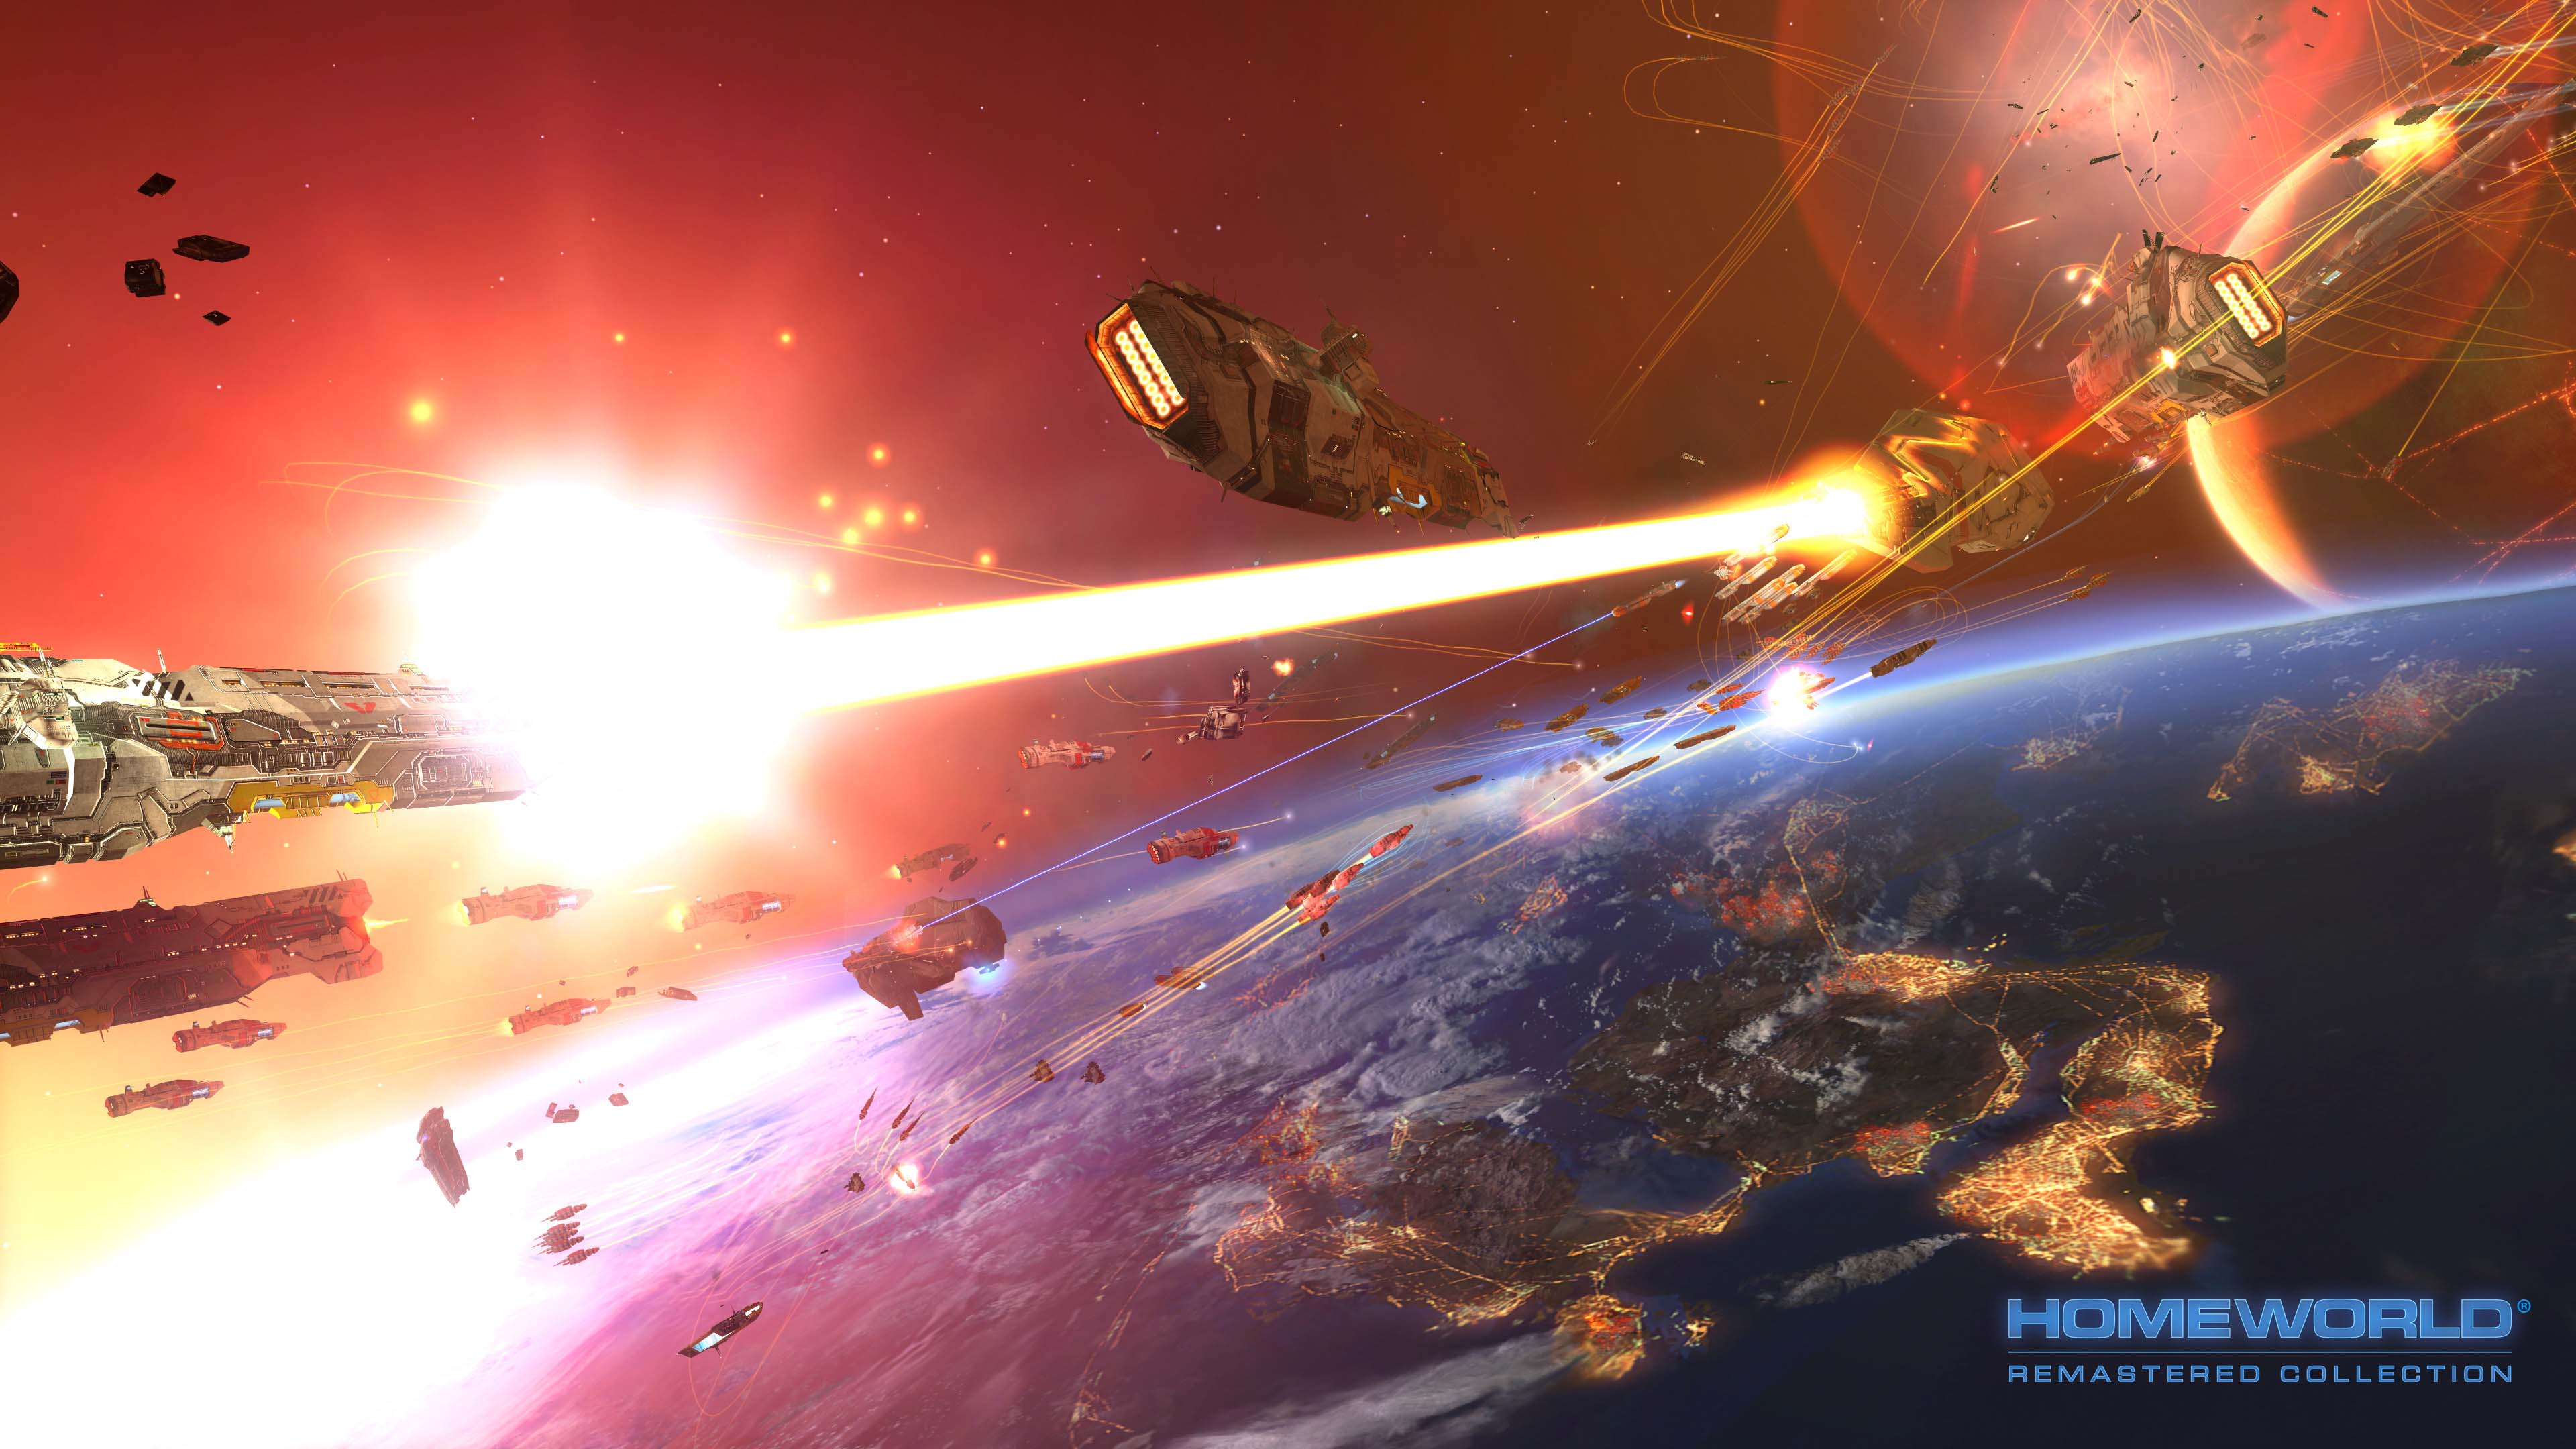 homeworld-remastered-collection-01